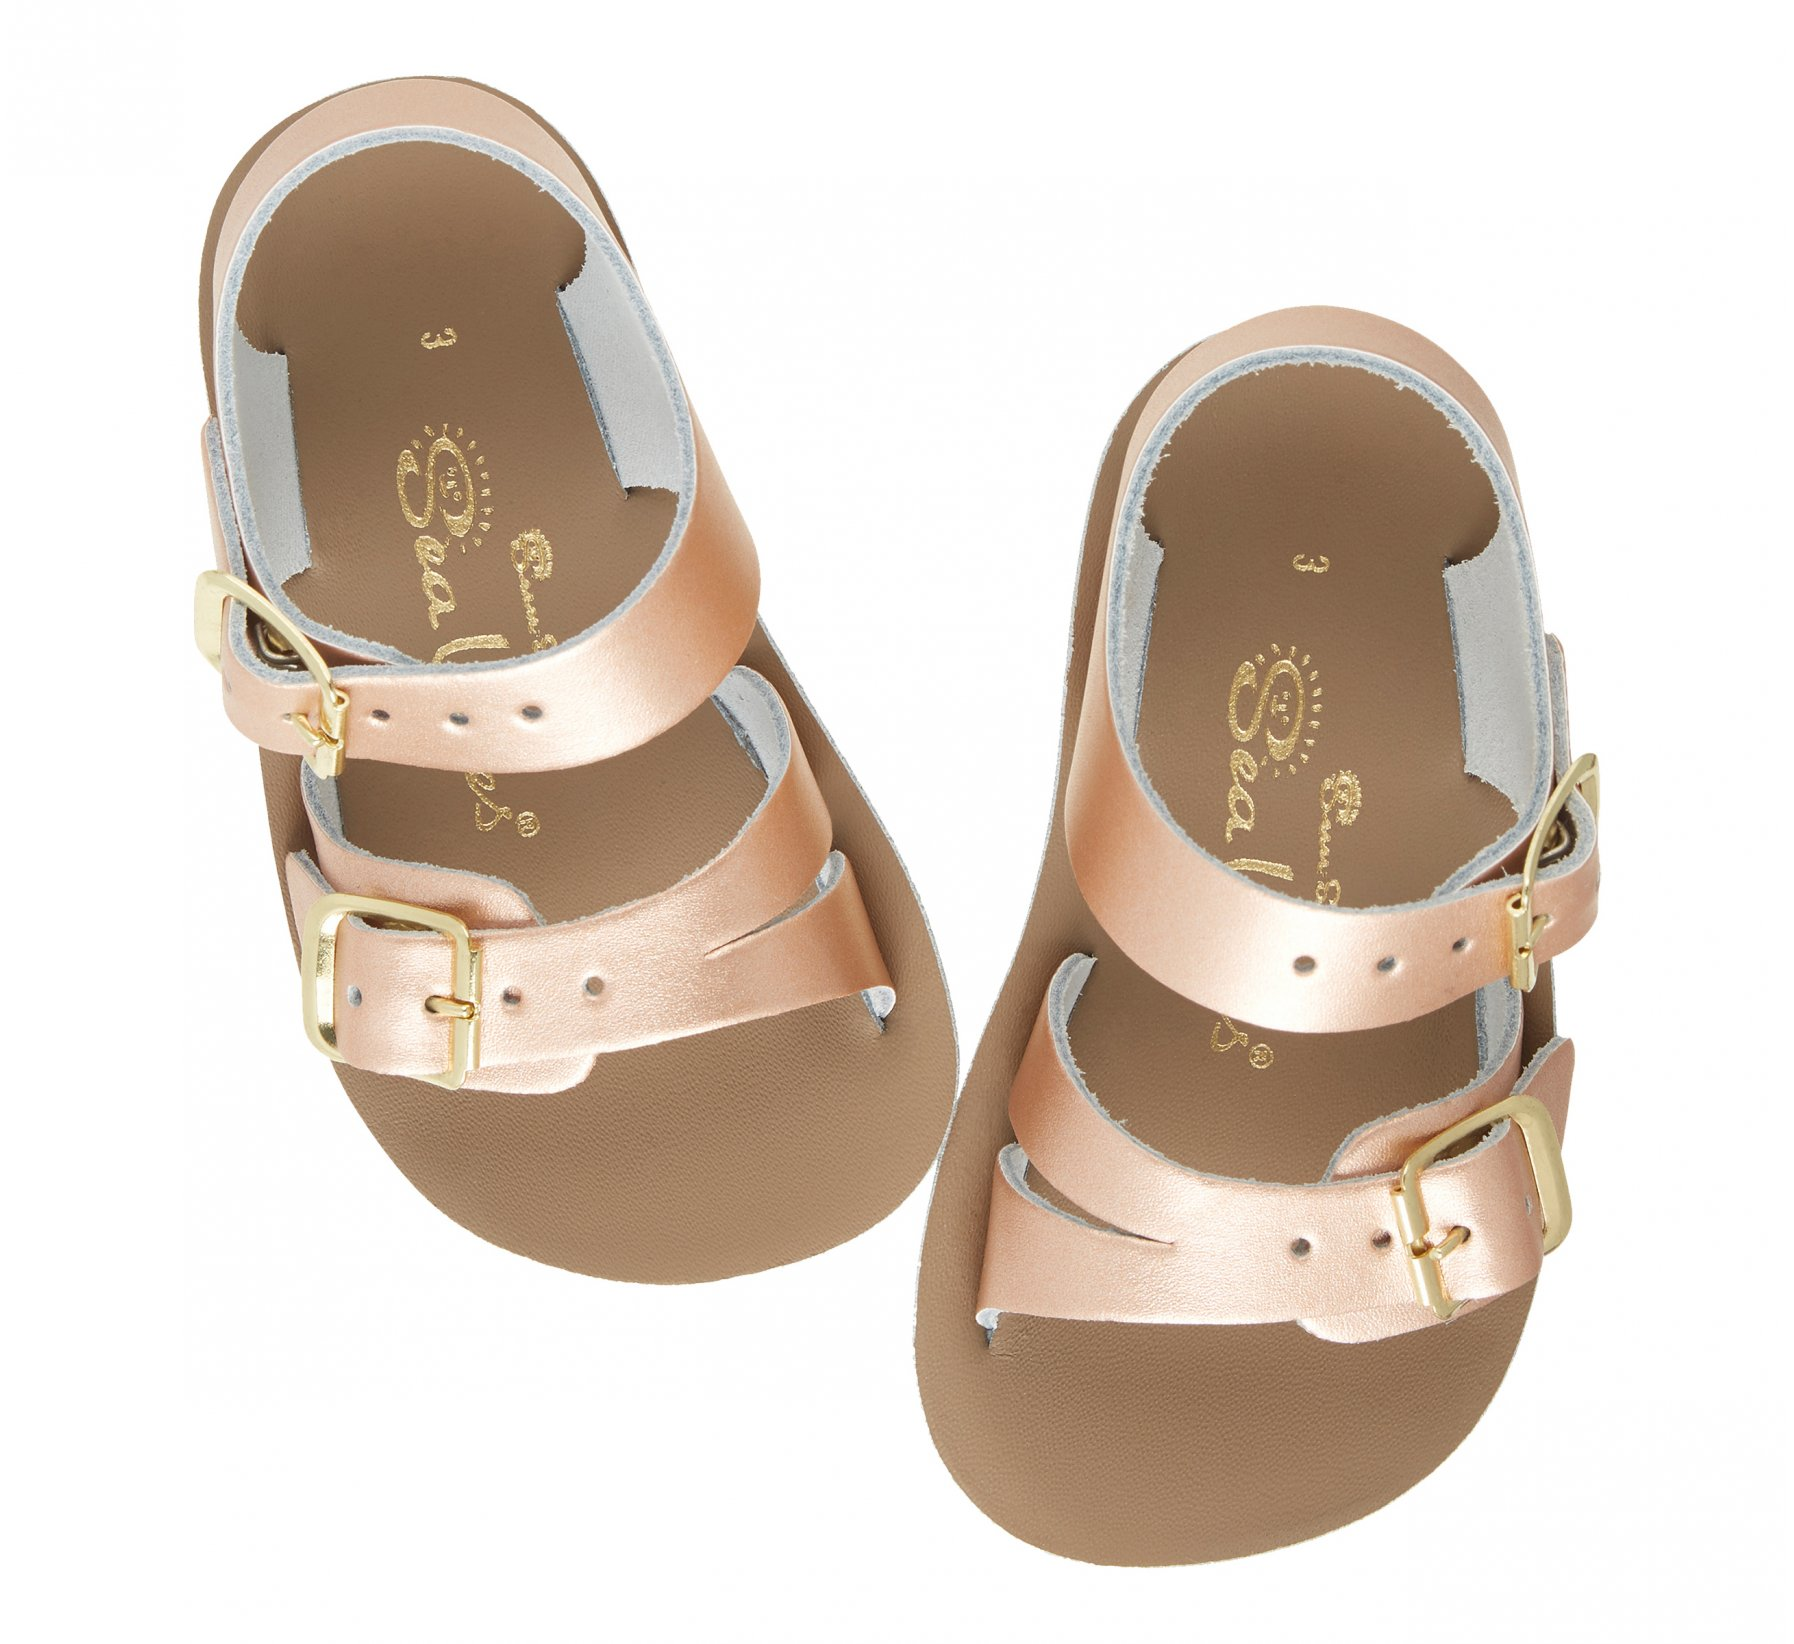 Seawee Rose Gold  - Salt Water Sandals